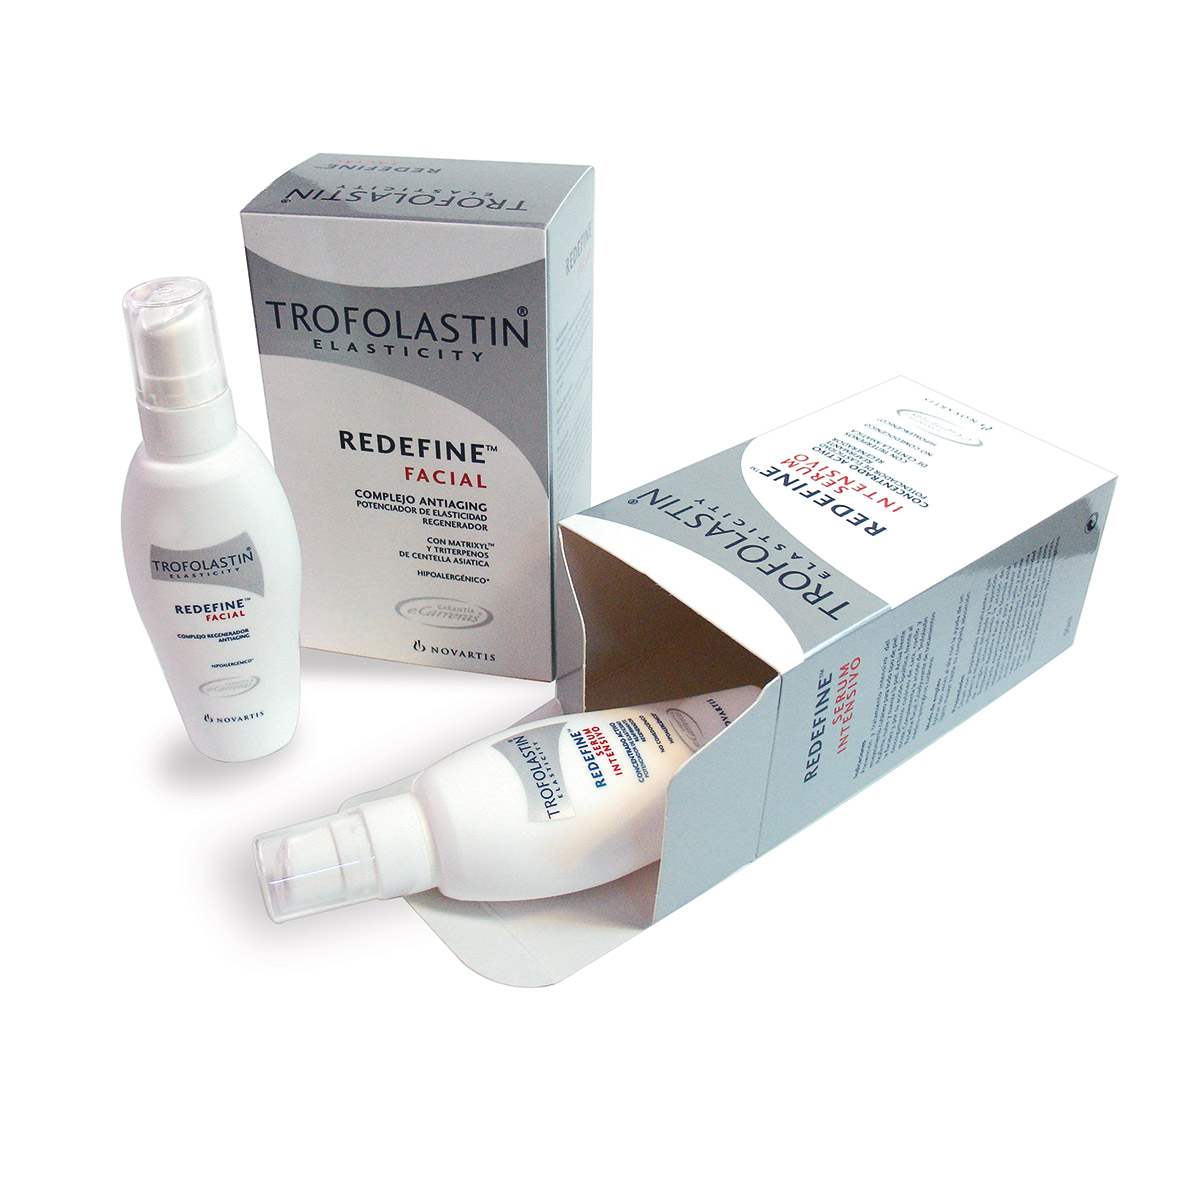 novartis_carreras_redifine